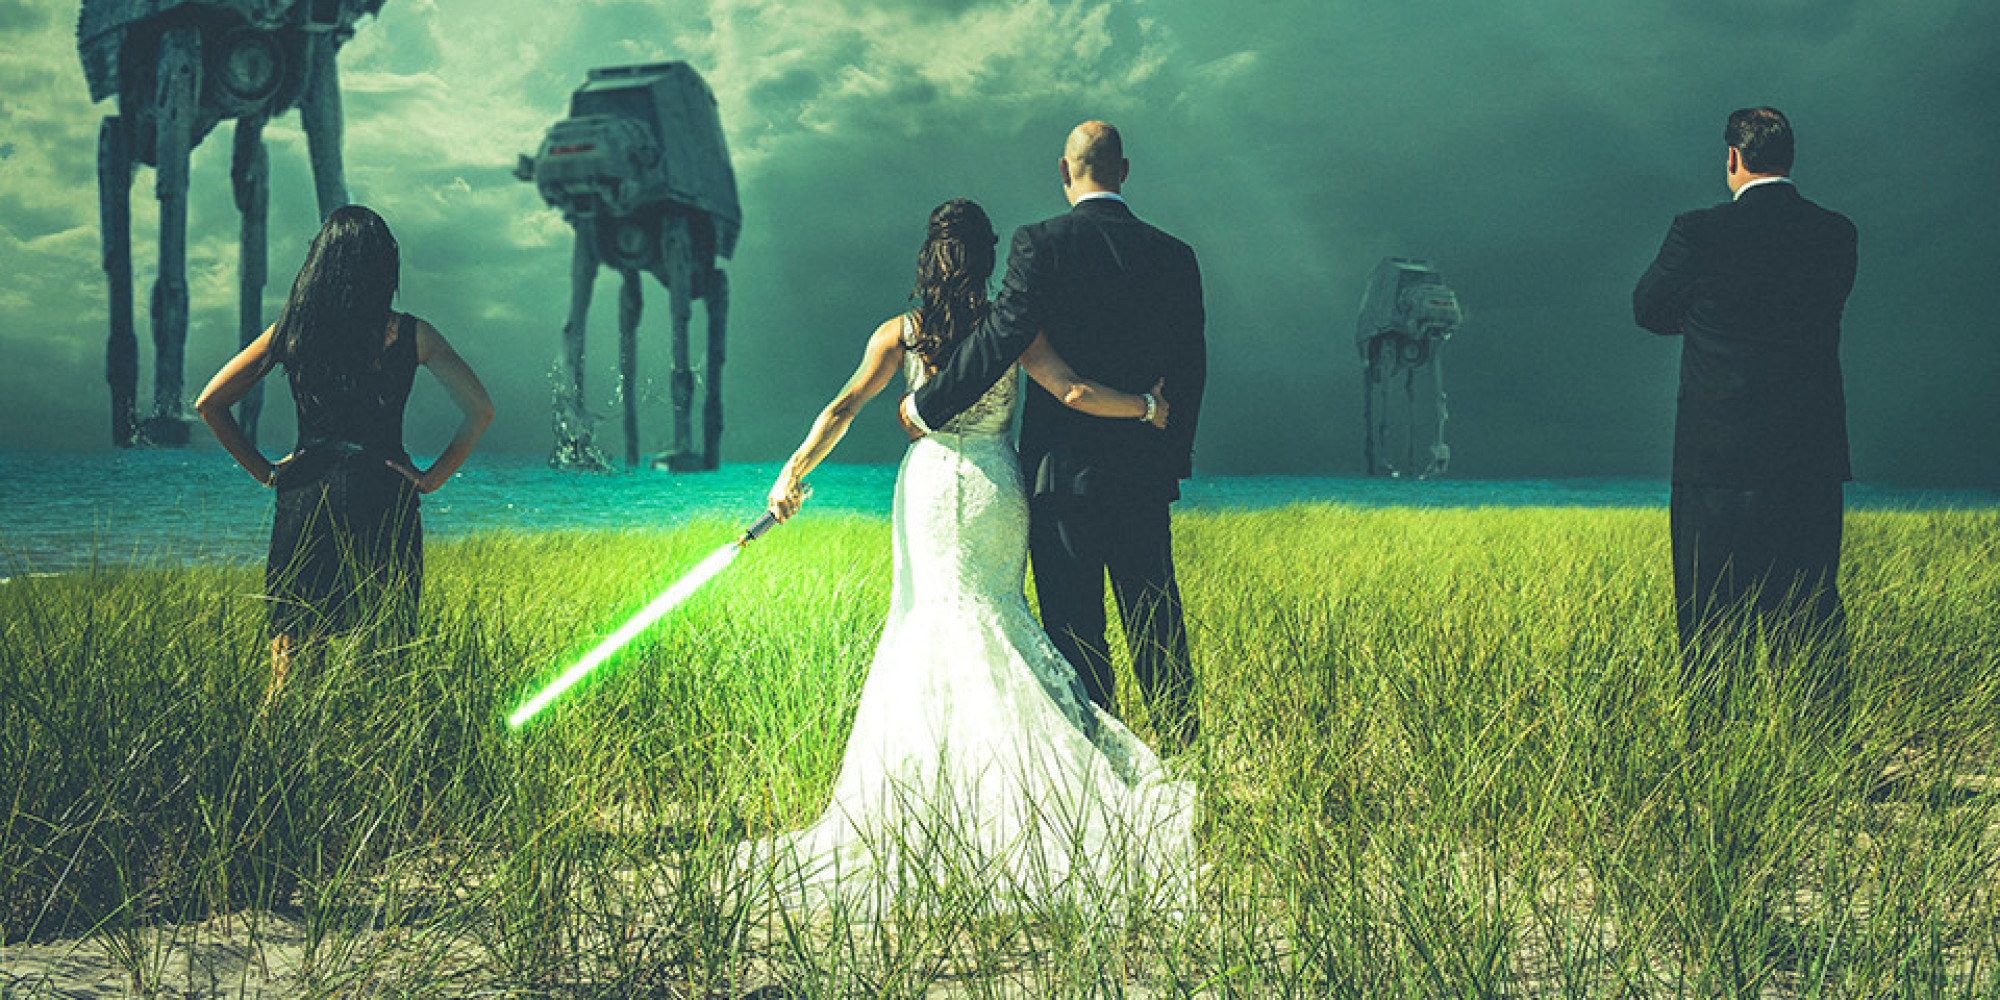 star wars wedding n star wars wedding bands Everything You Need For A Star Wars Wedding Minus The Evil Sith Lord HuffPost